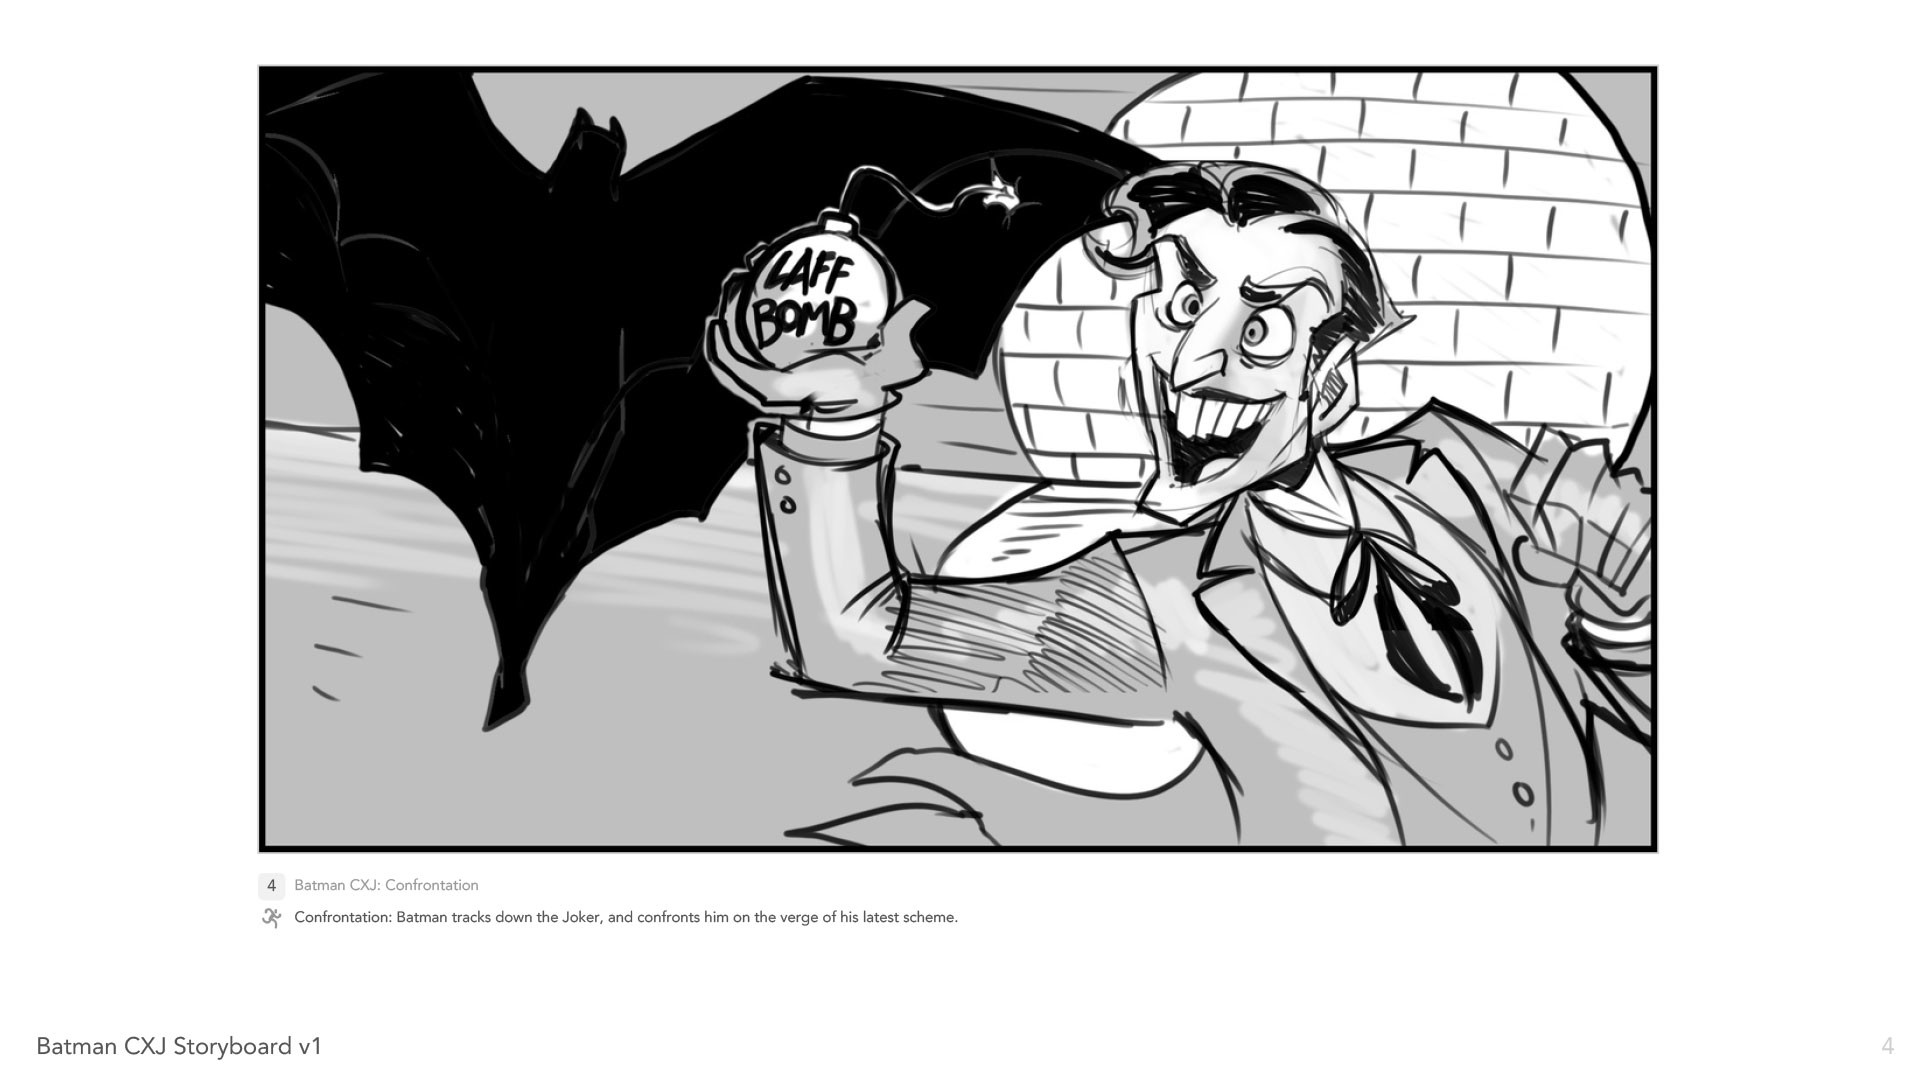 Chx welch batman cxj storyboard v1 5